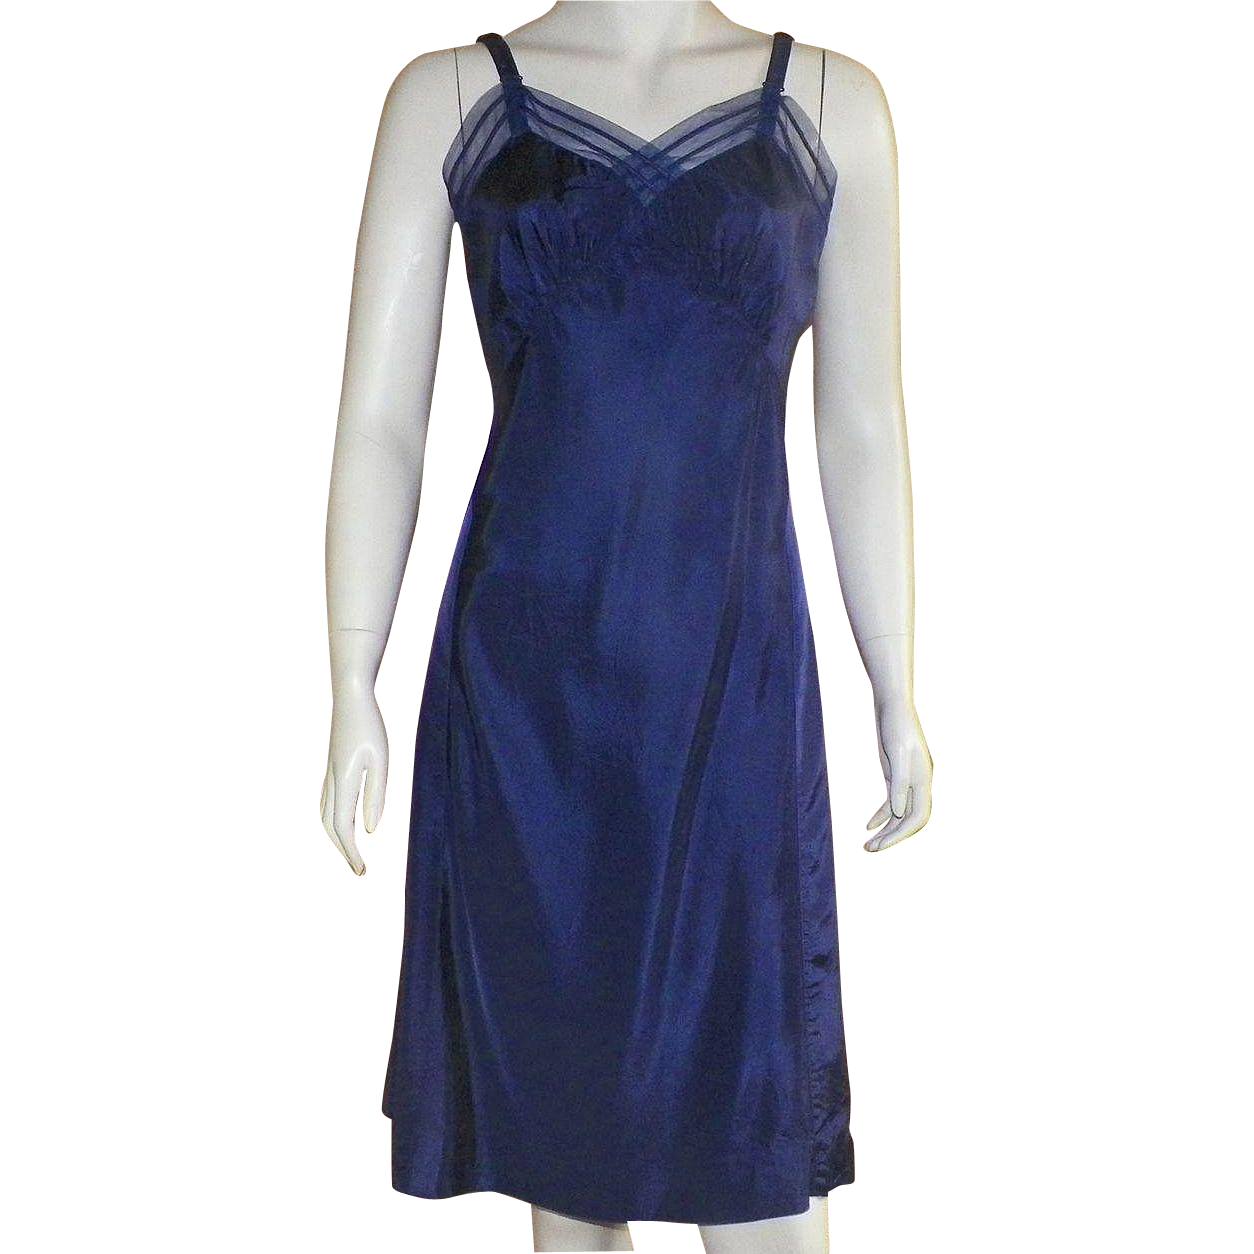 Vintage 1950's Navy Blue Rayon Full Slip By Miss Swank 34